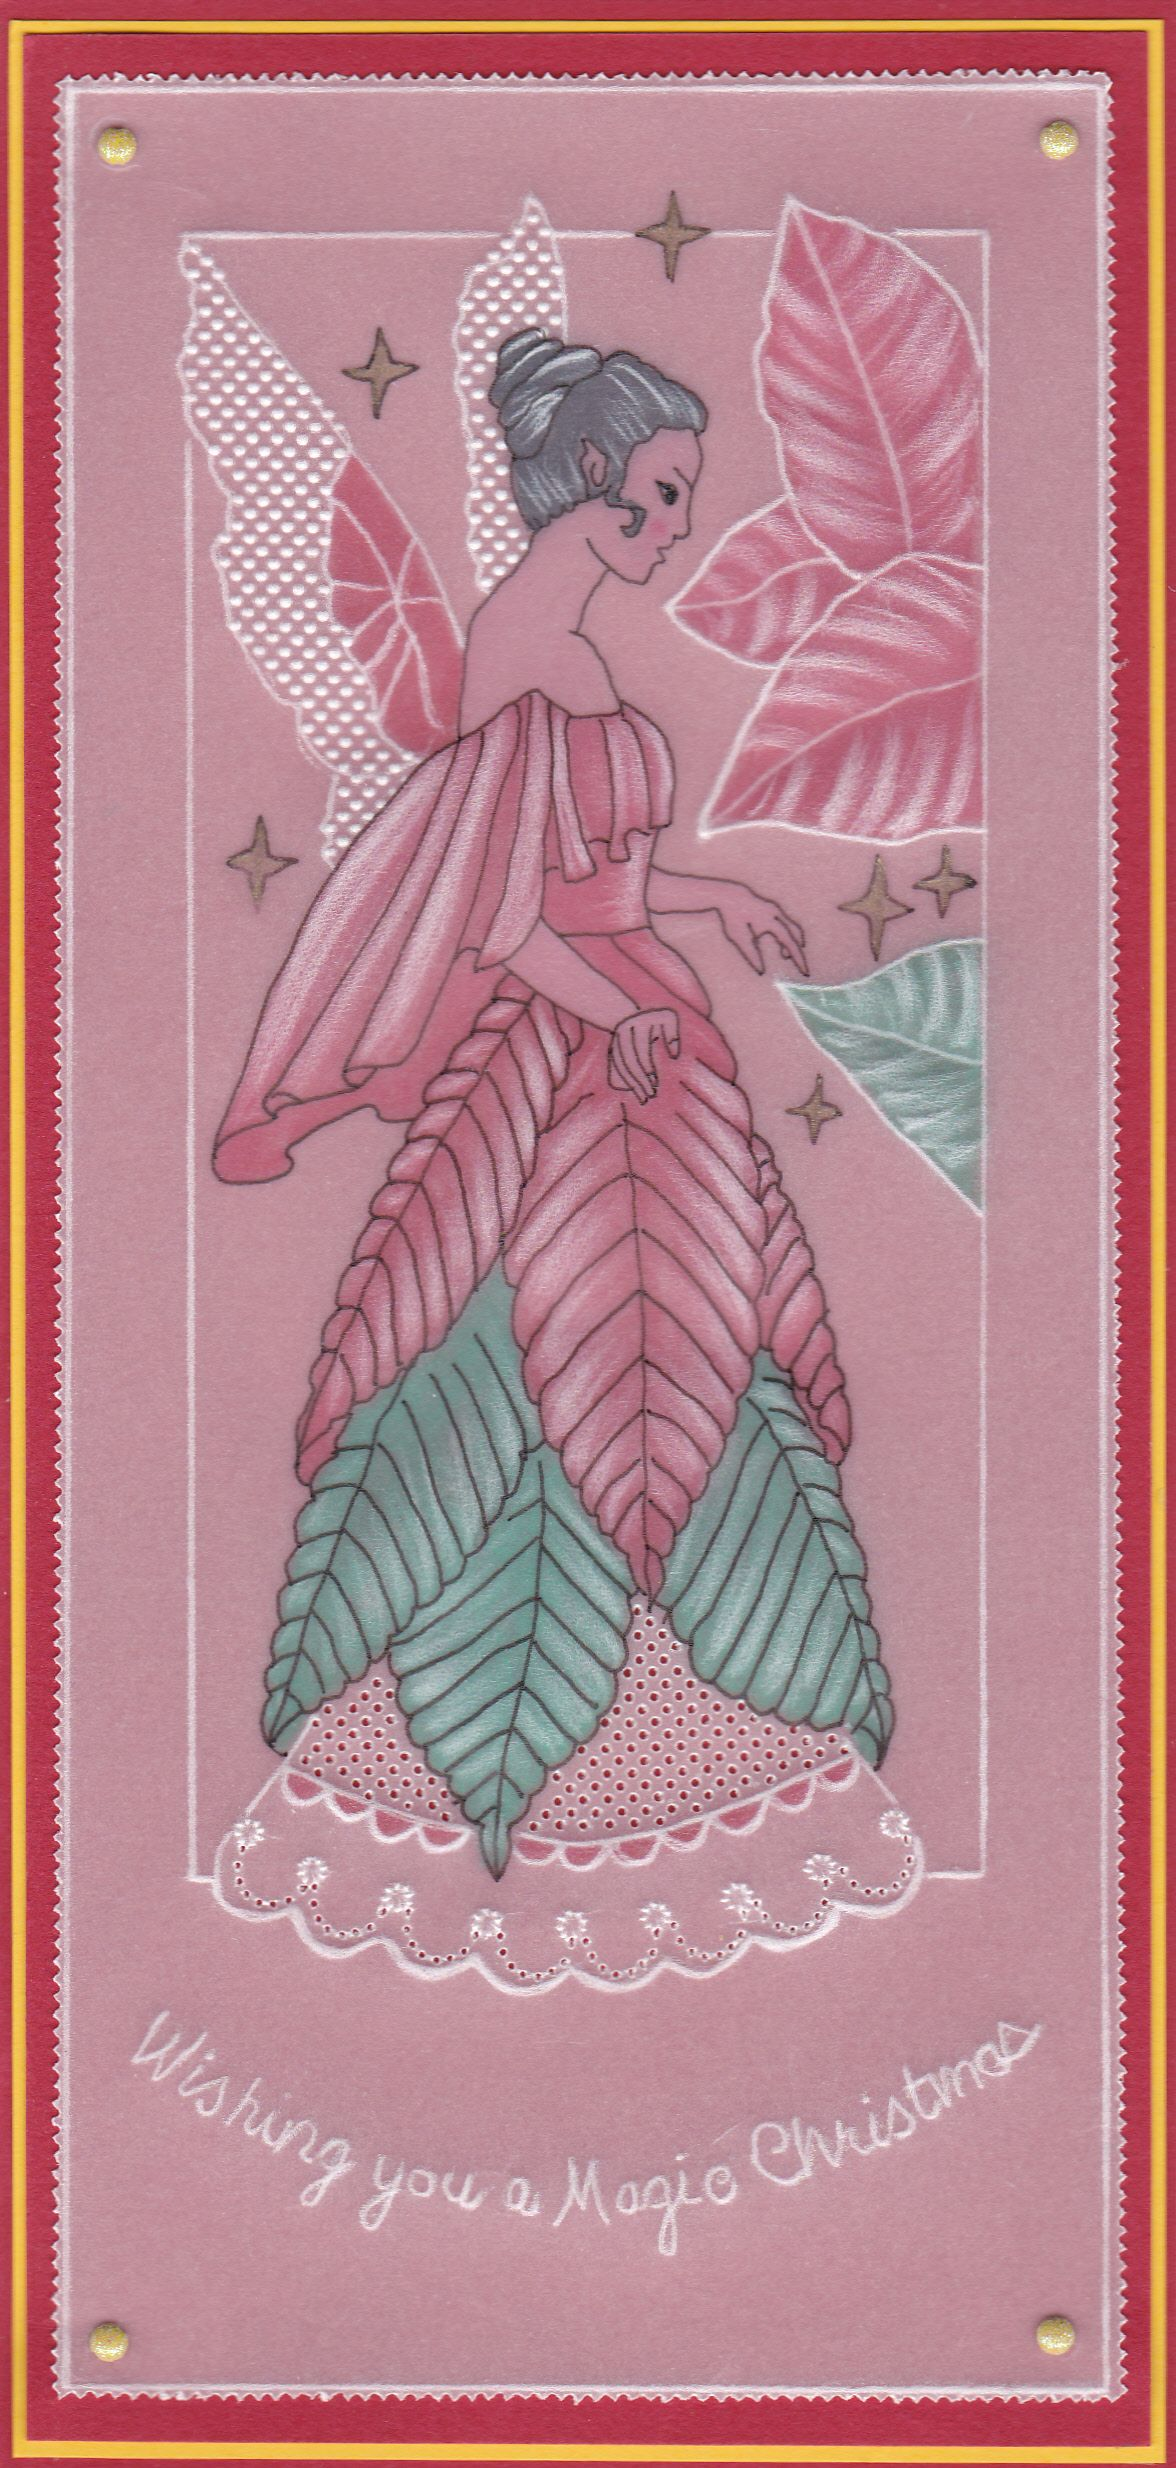 Poinsettia Fairy 1st Of 3 New Judith Maslen Patterns For Christmas